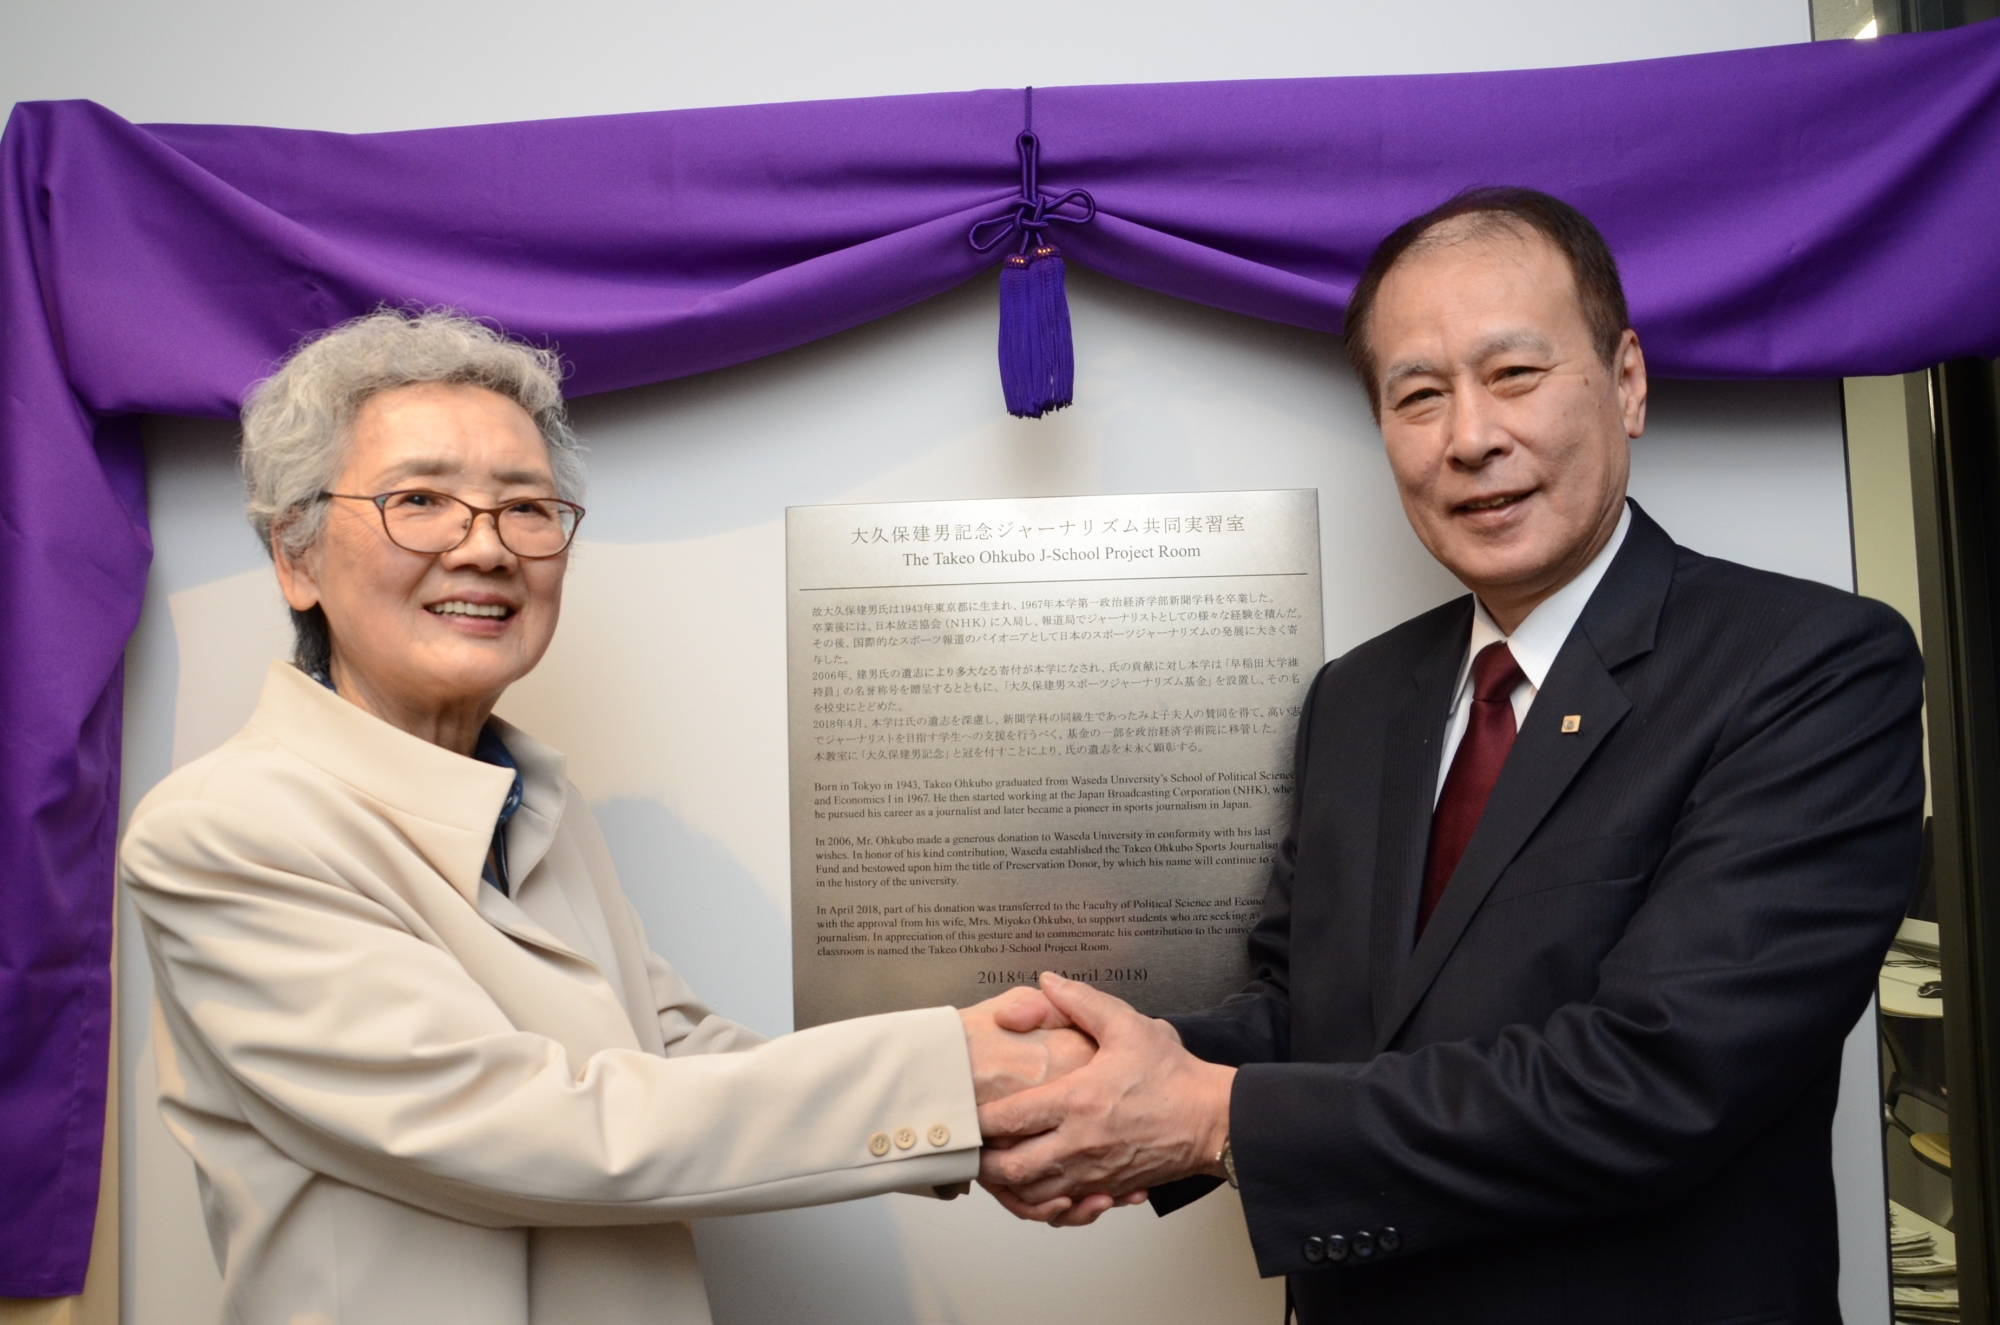 Unveiling ceremony of the Takeo Ohkubo J-School Project Room